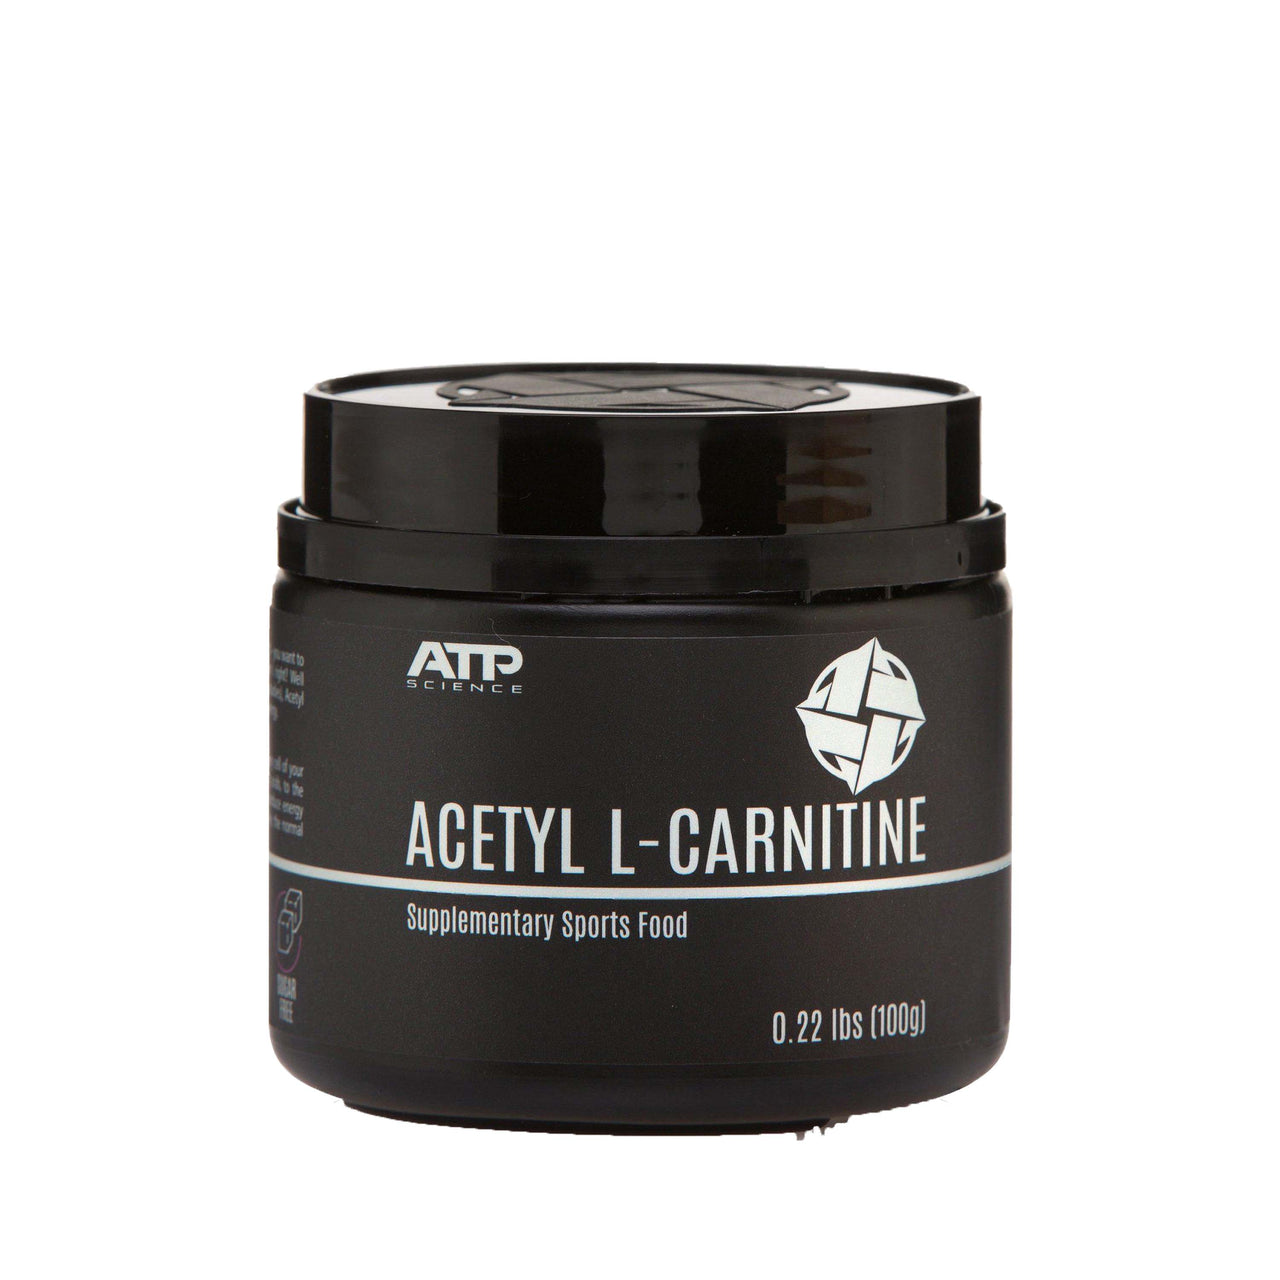 ATP Science L-Carnitine 100g - Nutrition Co Australia